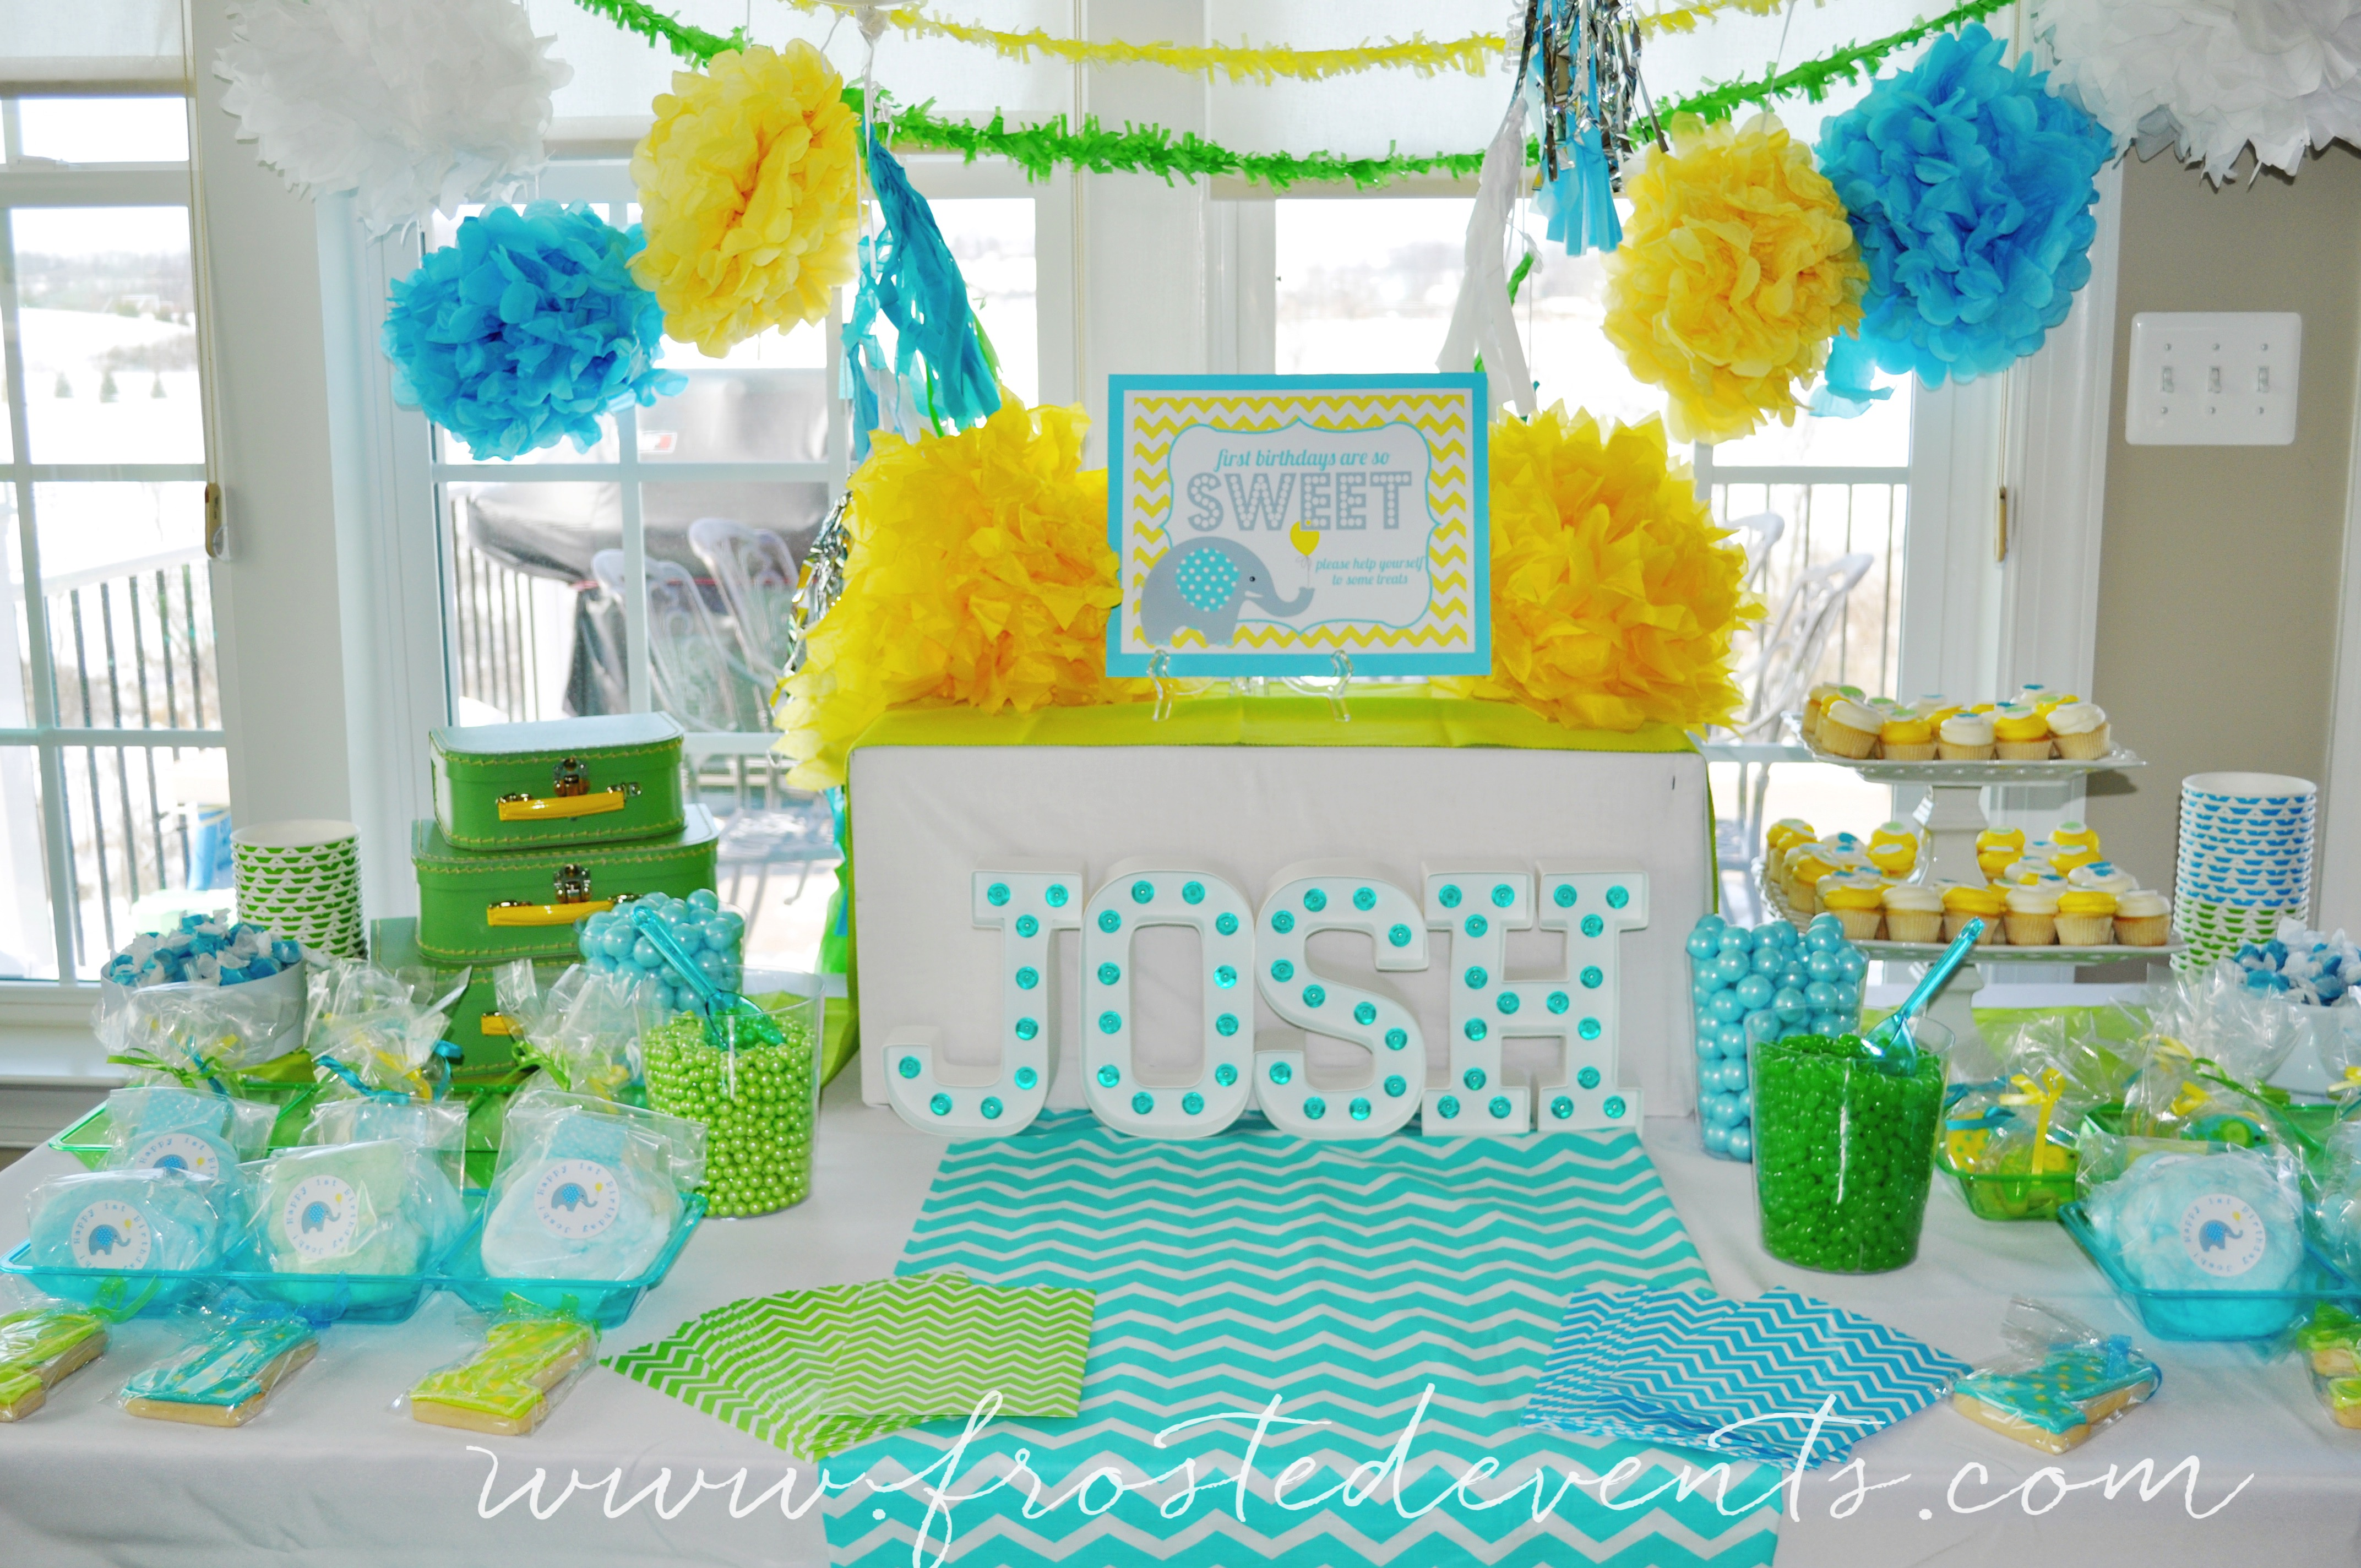 green-yellow-blue-aqua-dessert-table-bright-fun-first-birthday-party-josh-frostedeventscom-1